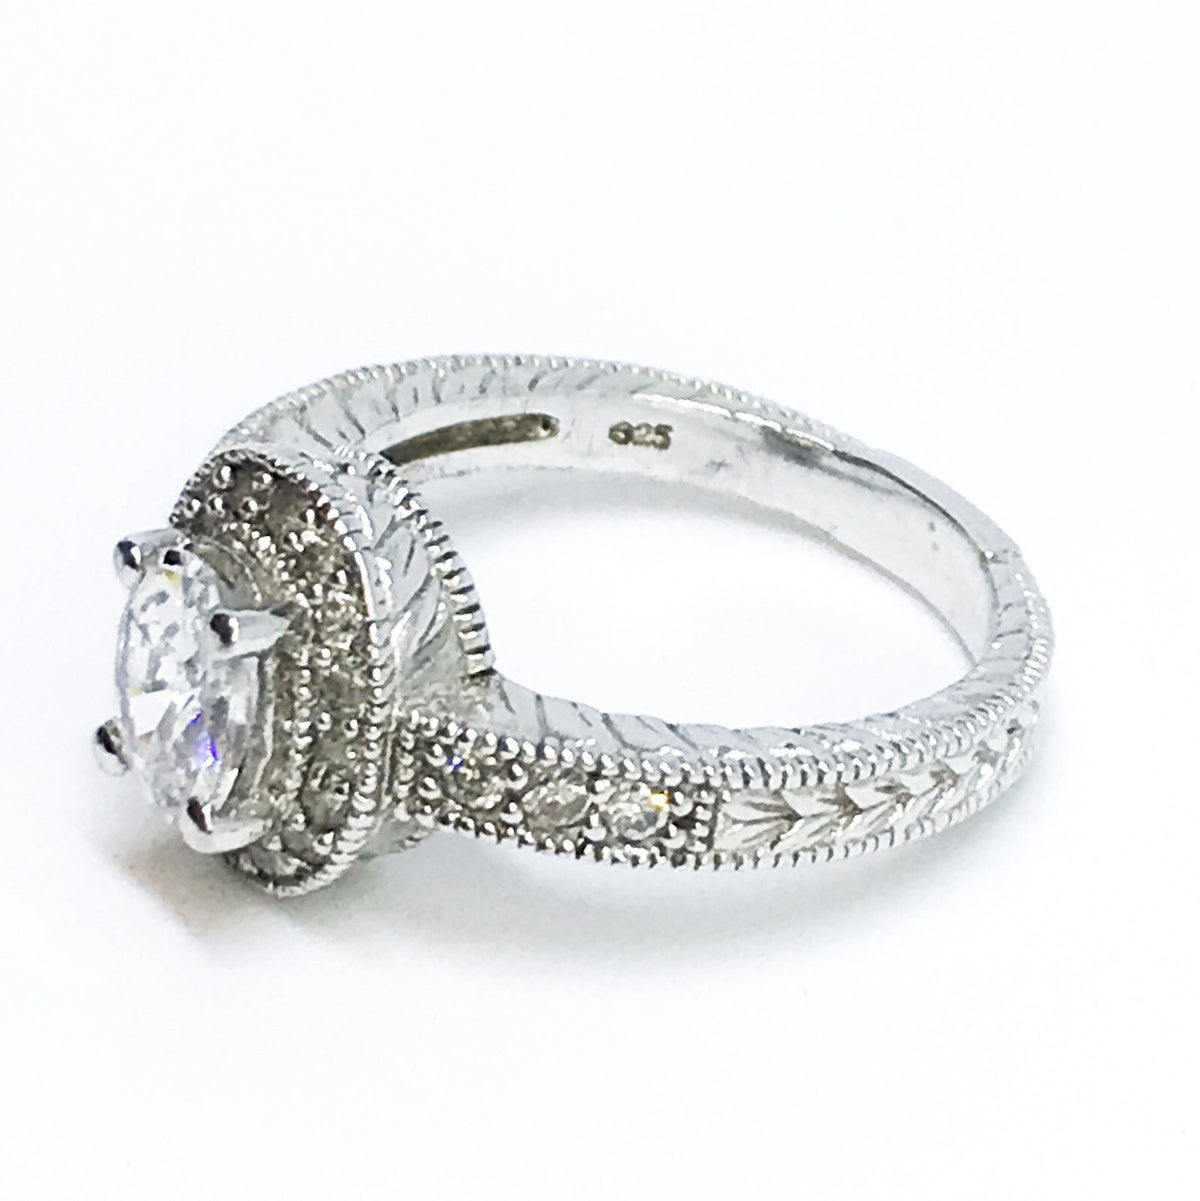 14K White Gold Layered On Sterling Silver Oval Ring - 3 Royal Dazzy